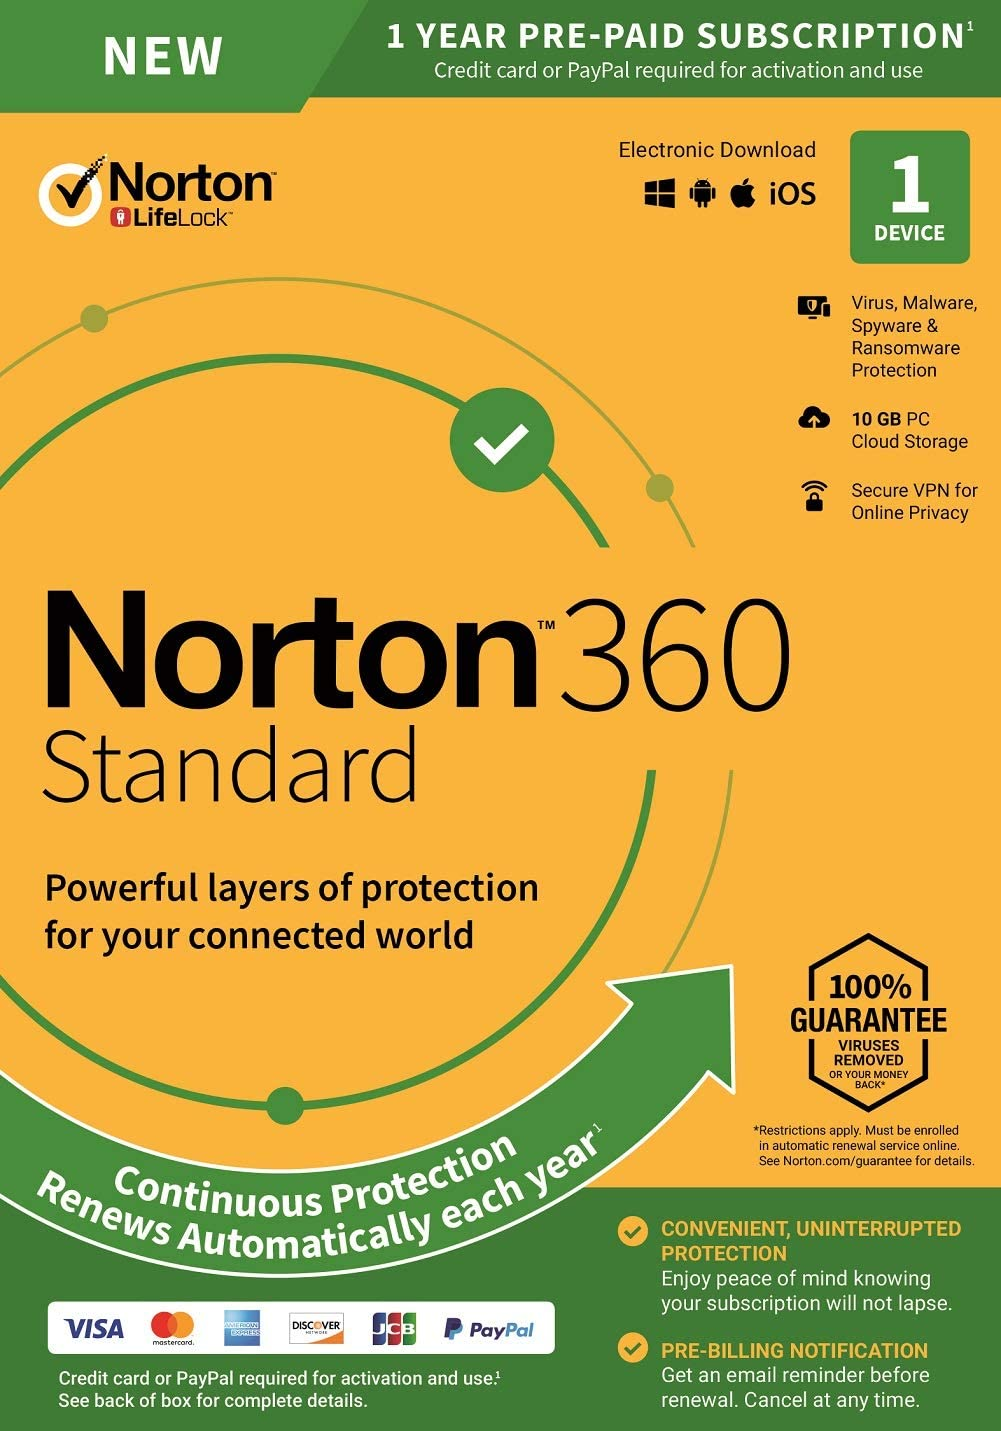 Norton 360 Standard – Antivirus Software for 1 Device with Auto Renewal – Includes VPN, PC Cloud Backup & Dark Web Monitoring powered by LifeLock - 2020 Ready [Key Card]